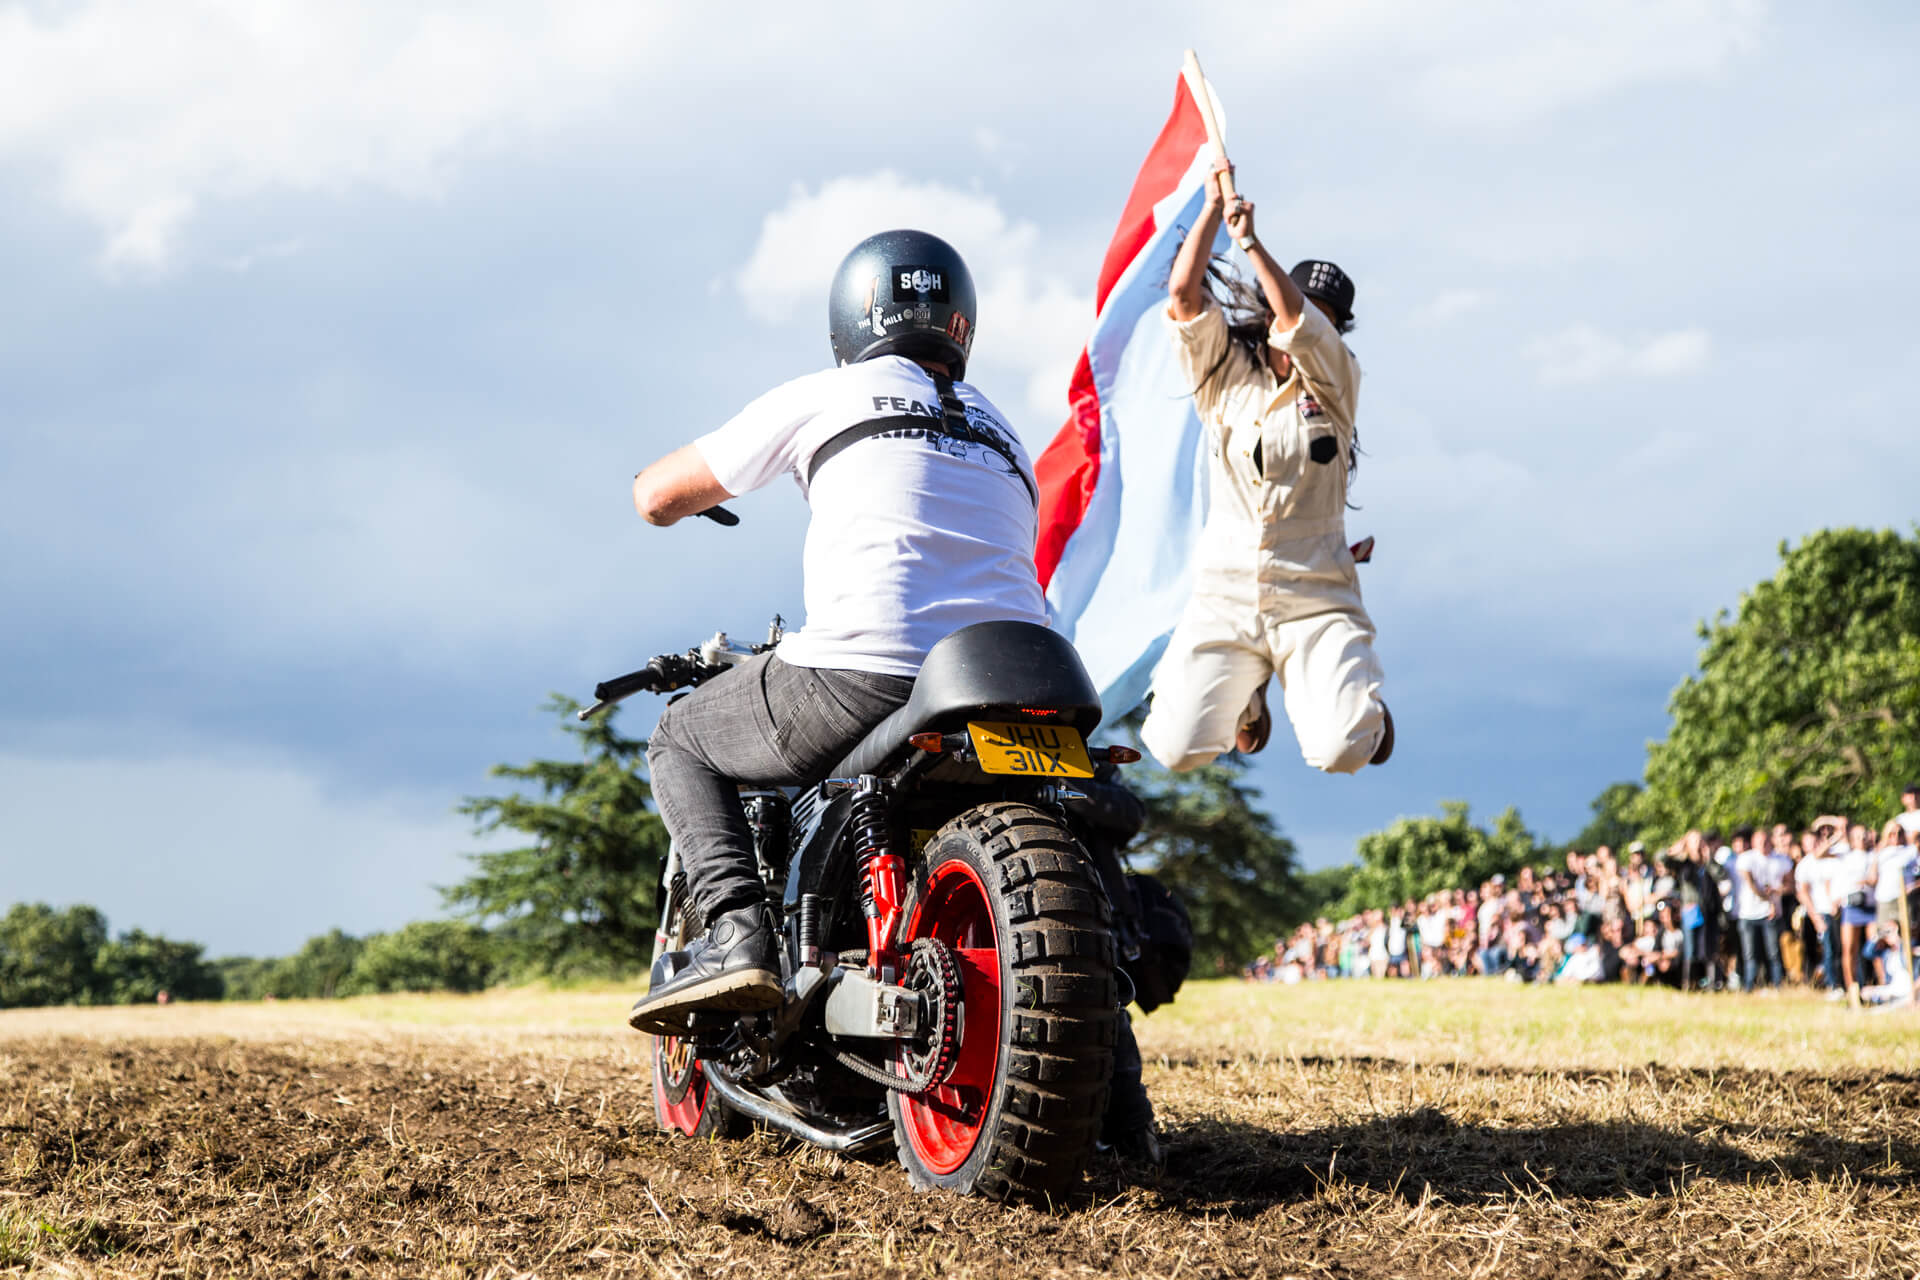 Malle Mile, The Mile, Event, Motorcycle, Summer, WeAreShuffle, Agency, Film, Photography, Film, Production, Malle London, Triumph, Deus, Flag, Steward, Biker